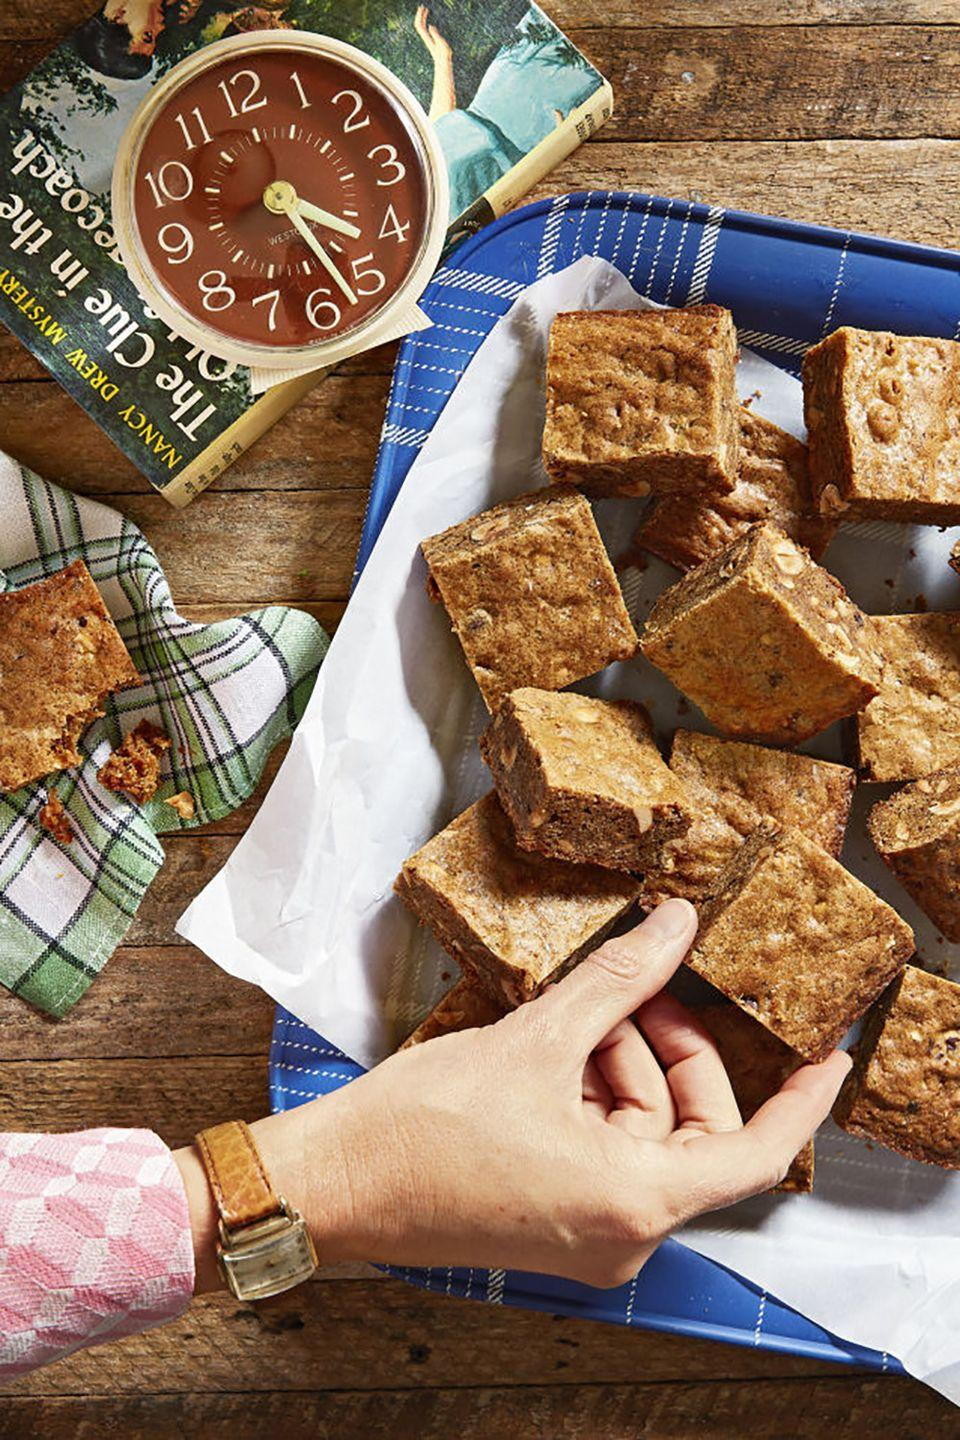 """<p>Inspired by Nancy Drew, these brown sugar and chopped hazelnuts blondies are the perfect fuel for a <a href=""""https://www.countryliving.com/entertaining/g4790/nancy-drew-themed-halloween-mystery-party/"""" rel=""""nofollow noopener"""" target=""""_blank"""" data-ylk=""""slk:murder mystery party"""" class=""""link rapid-noclick-resp"""">murder mystery party</a>.</p><p><strong><a href=""""https://www.countryliving.com/food-drinks/recipes/a44613/brown-butter-hazelnut-blondies-recipe/"""" rel=""""nofollow noopener"""" target=""""_blank"""" data-ylk=""""slk:Get the recipe"""" class=""""link rapid-noclick-resp"""">Get the recipe</a>.</strong><br></p>"""